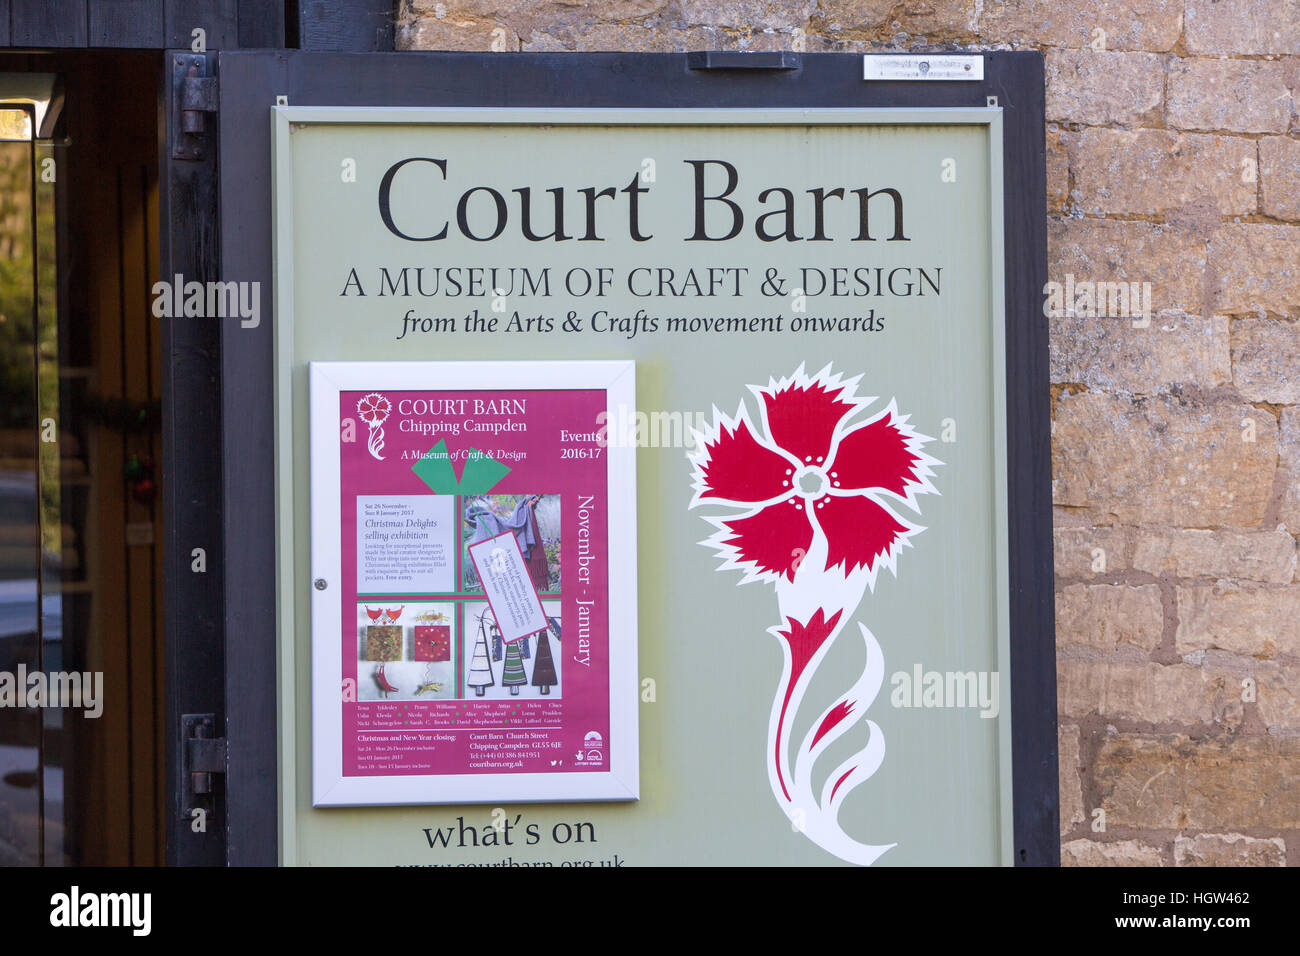 Court Barn Stock Photos & Court Barn Stock Images - Alamy